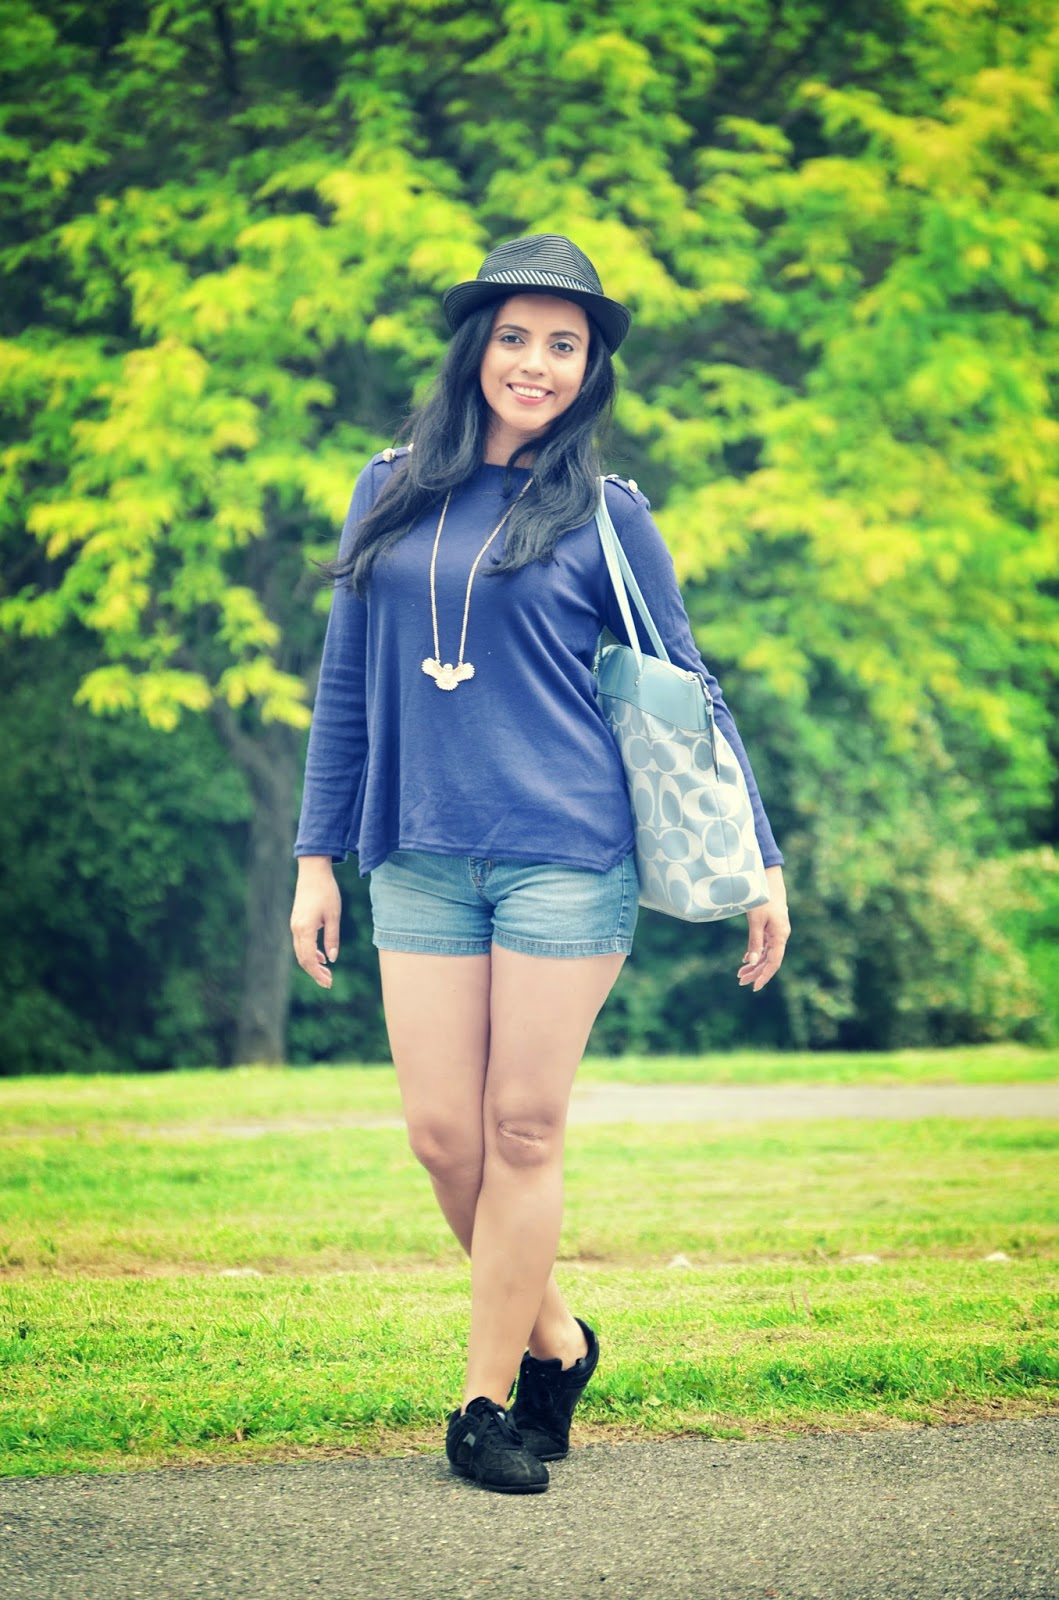 Shorts Casual y Chic